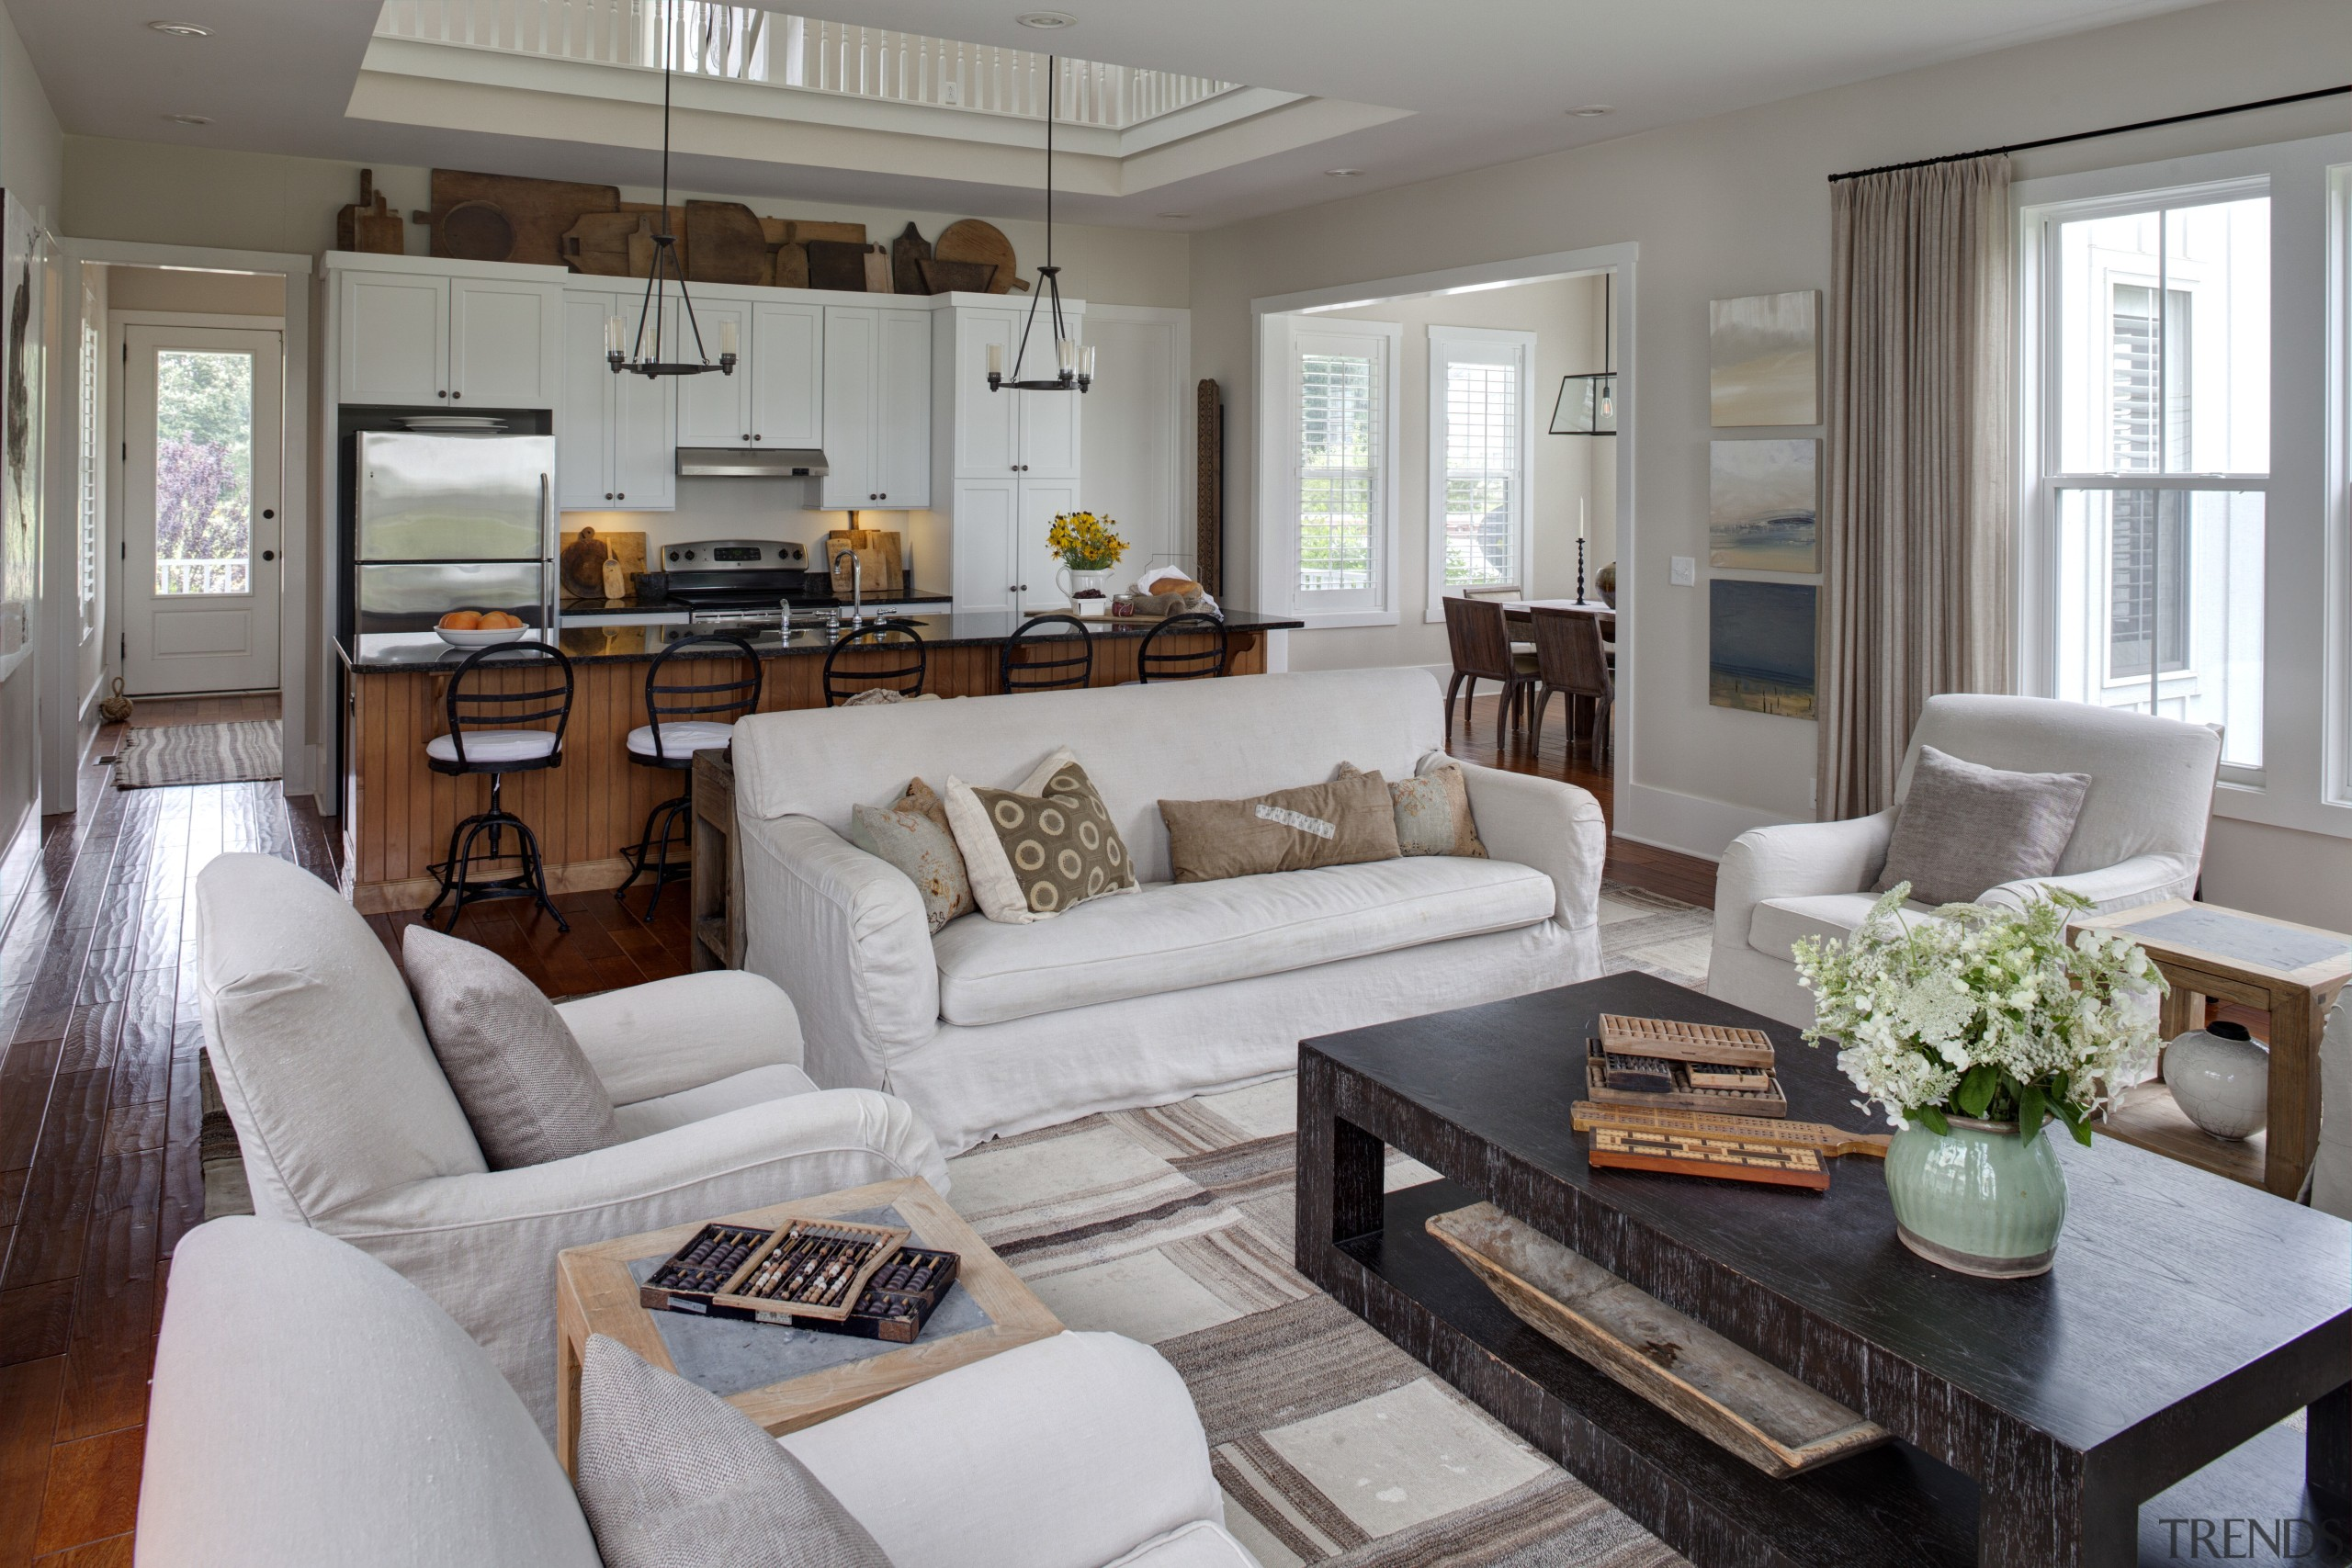 Most soft furnishings in this home are in home, interior design, living room, real estate, room, gray